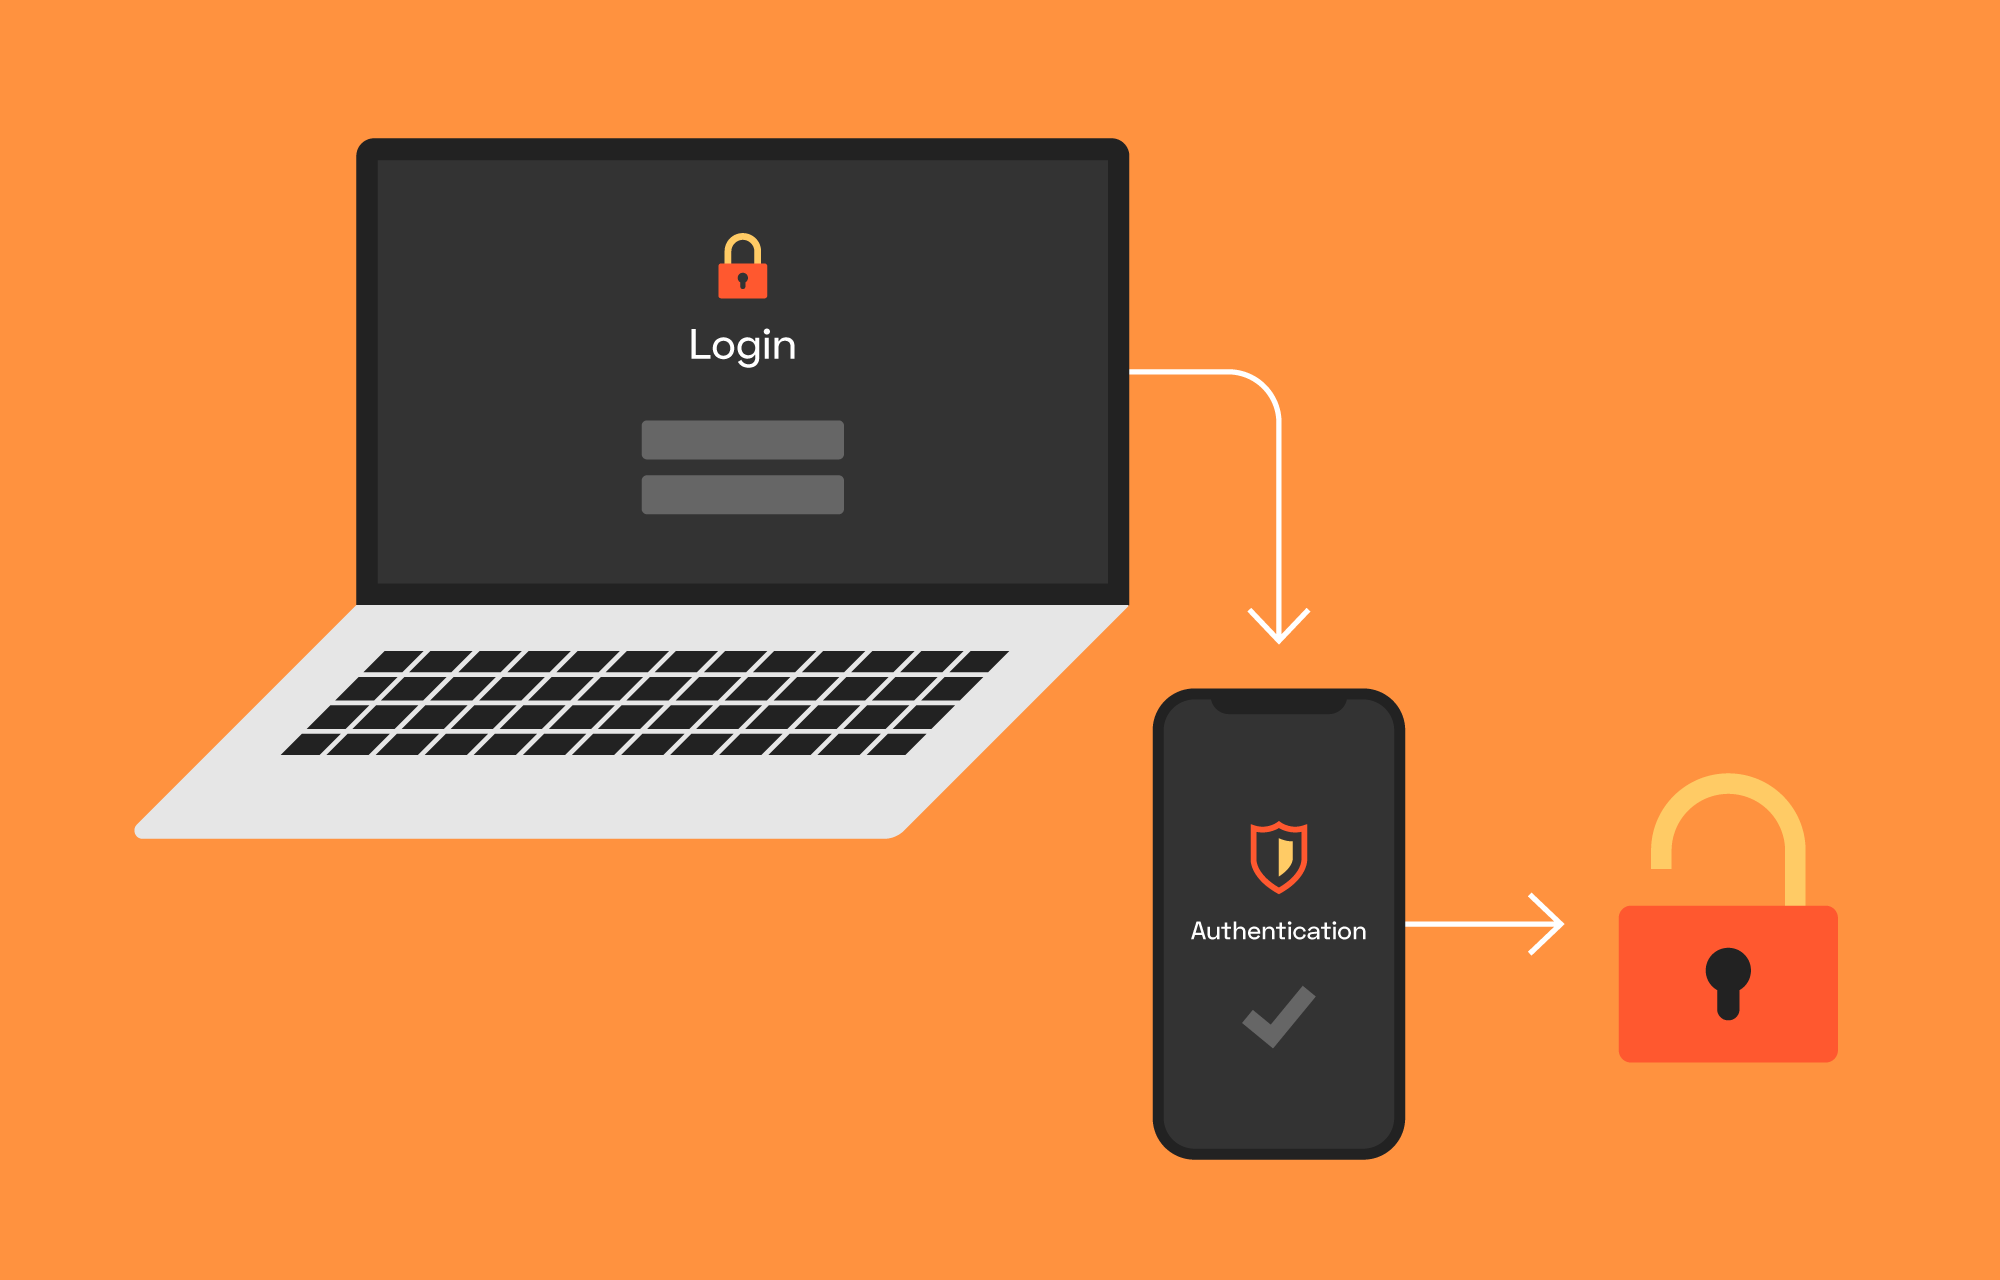 A login screen on a laptop and authentication on a phone unlocks a lock.